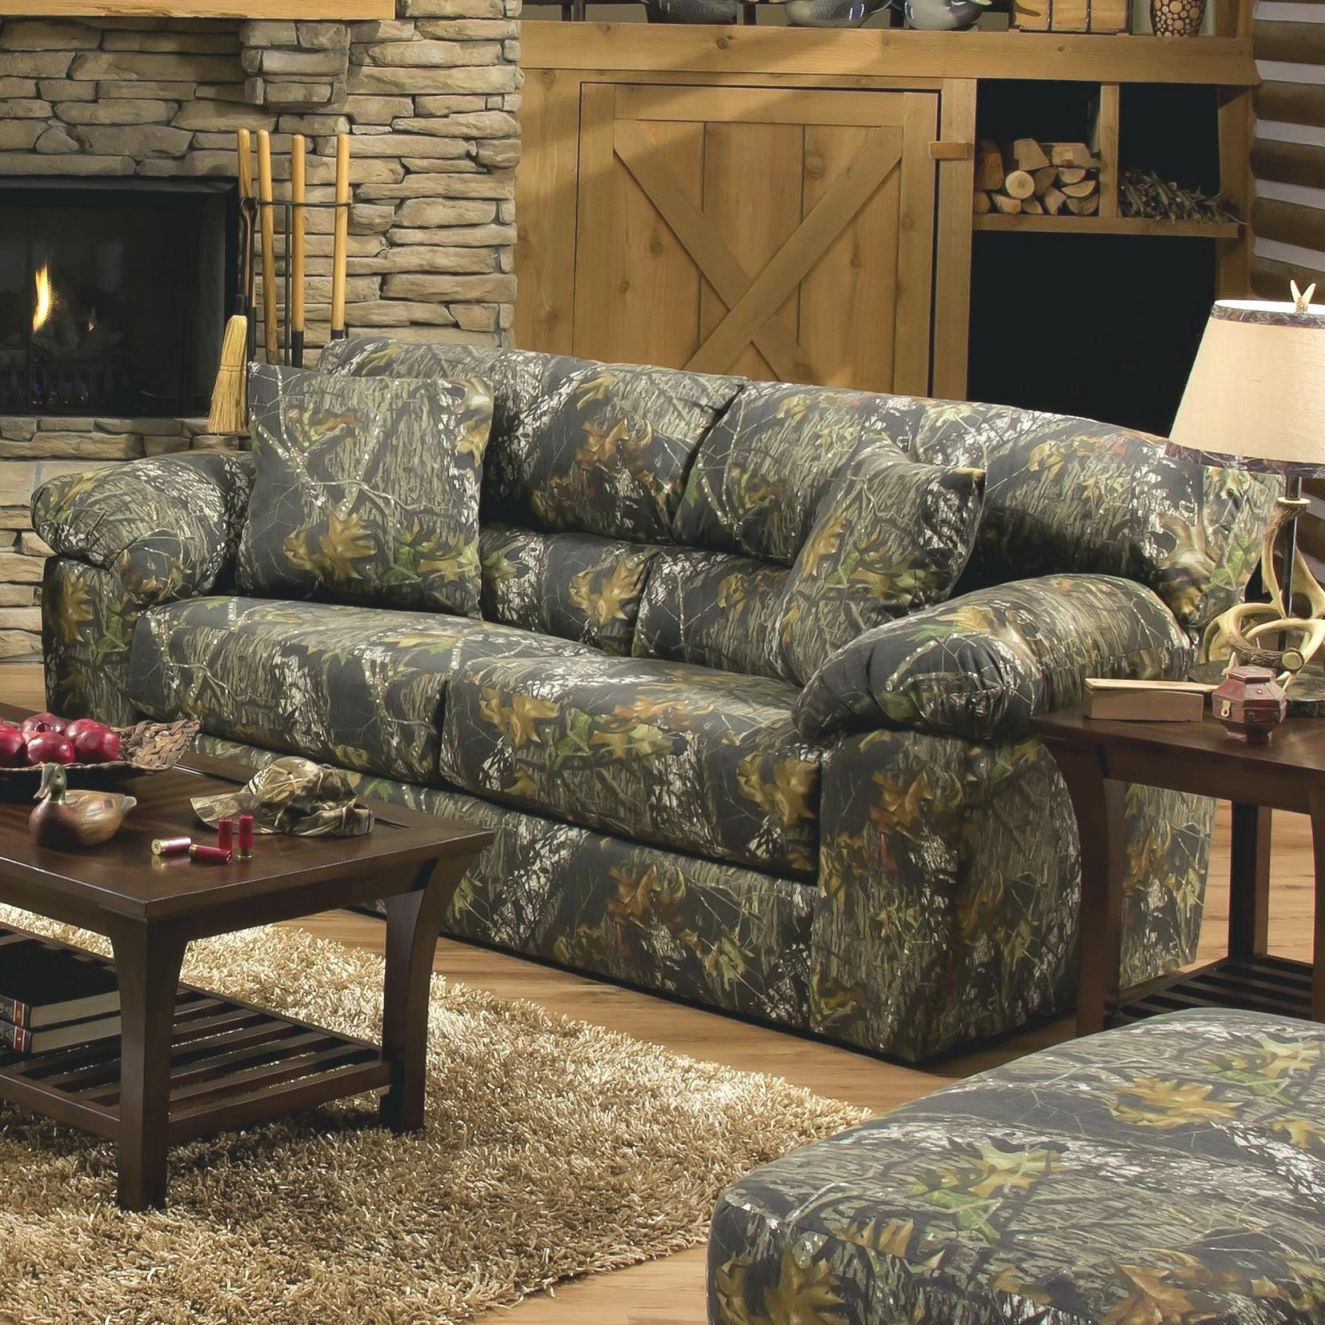 Camo Living Room Furniture – Pnrproperties pertaining to Camo Living Room Furniture